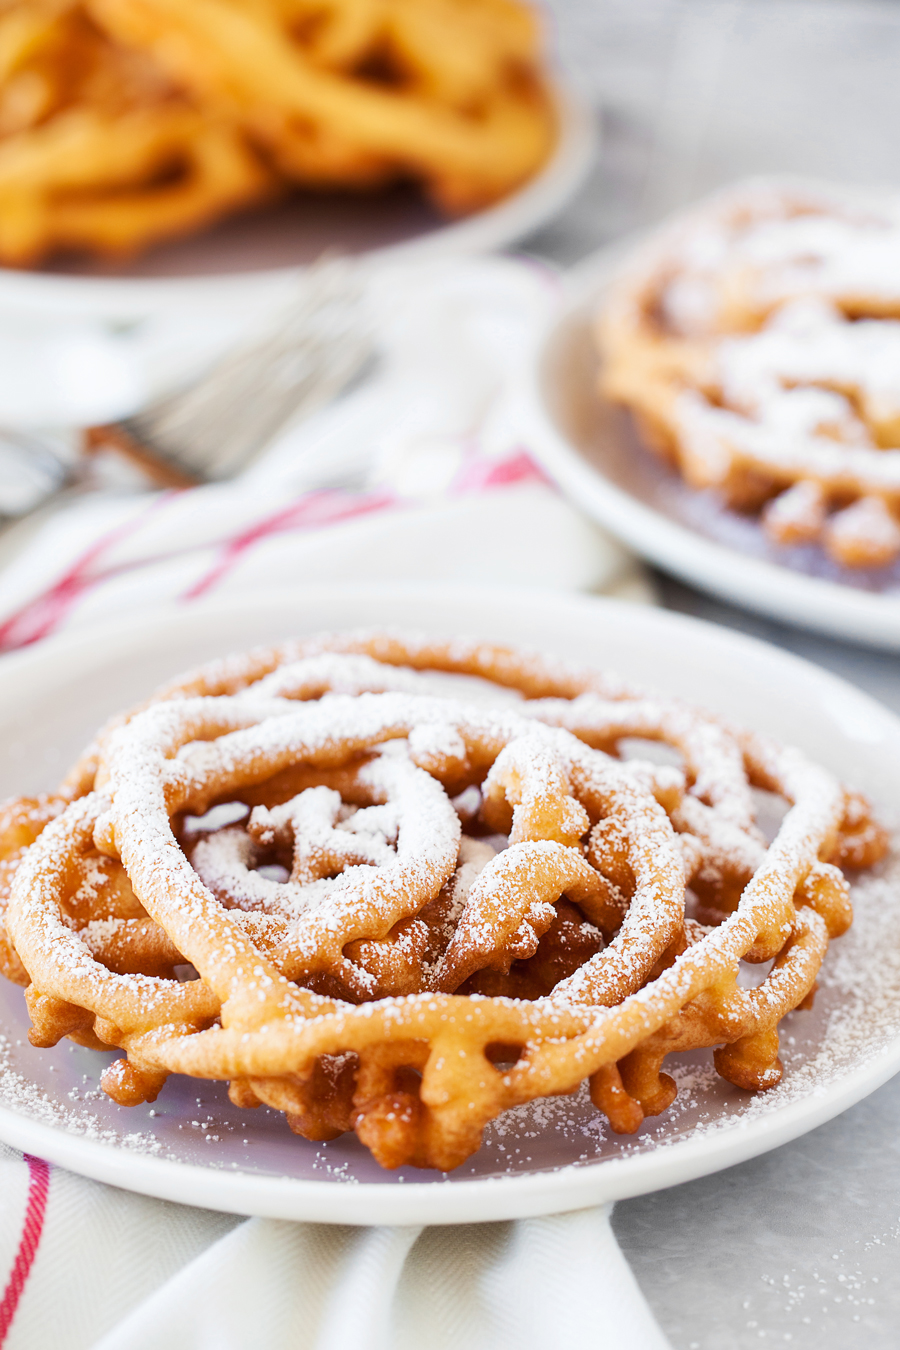 How To Make Funnel Cake Mix